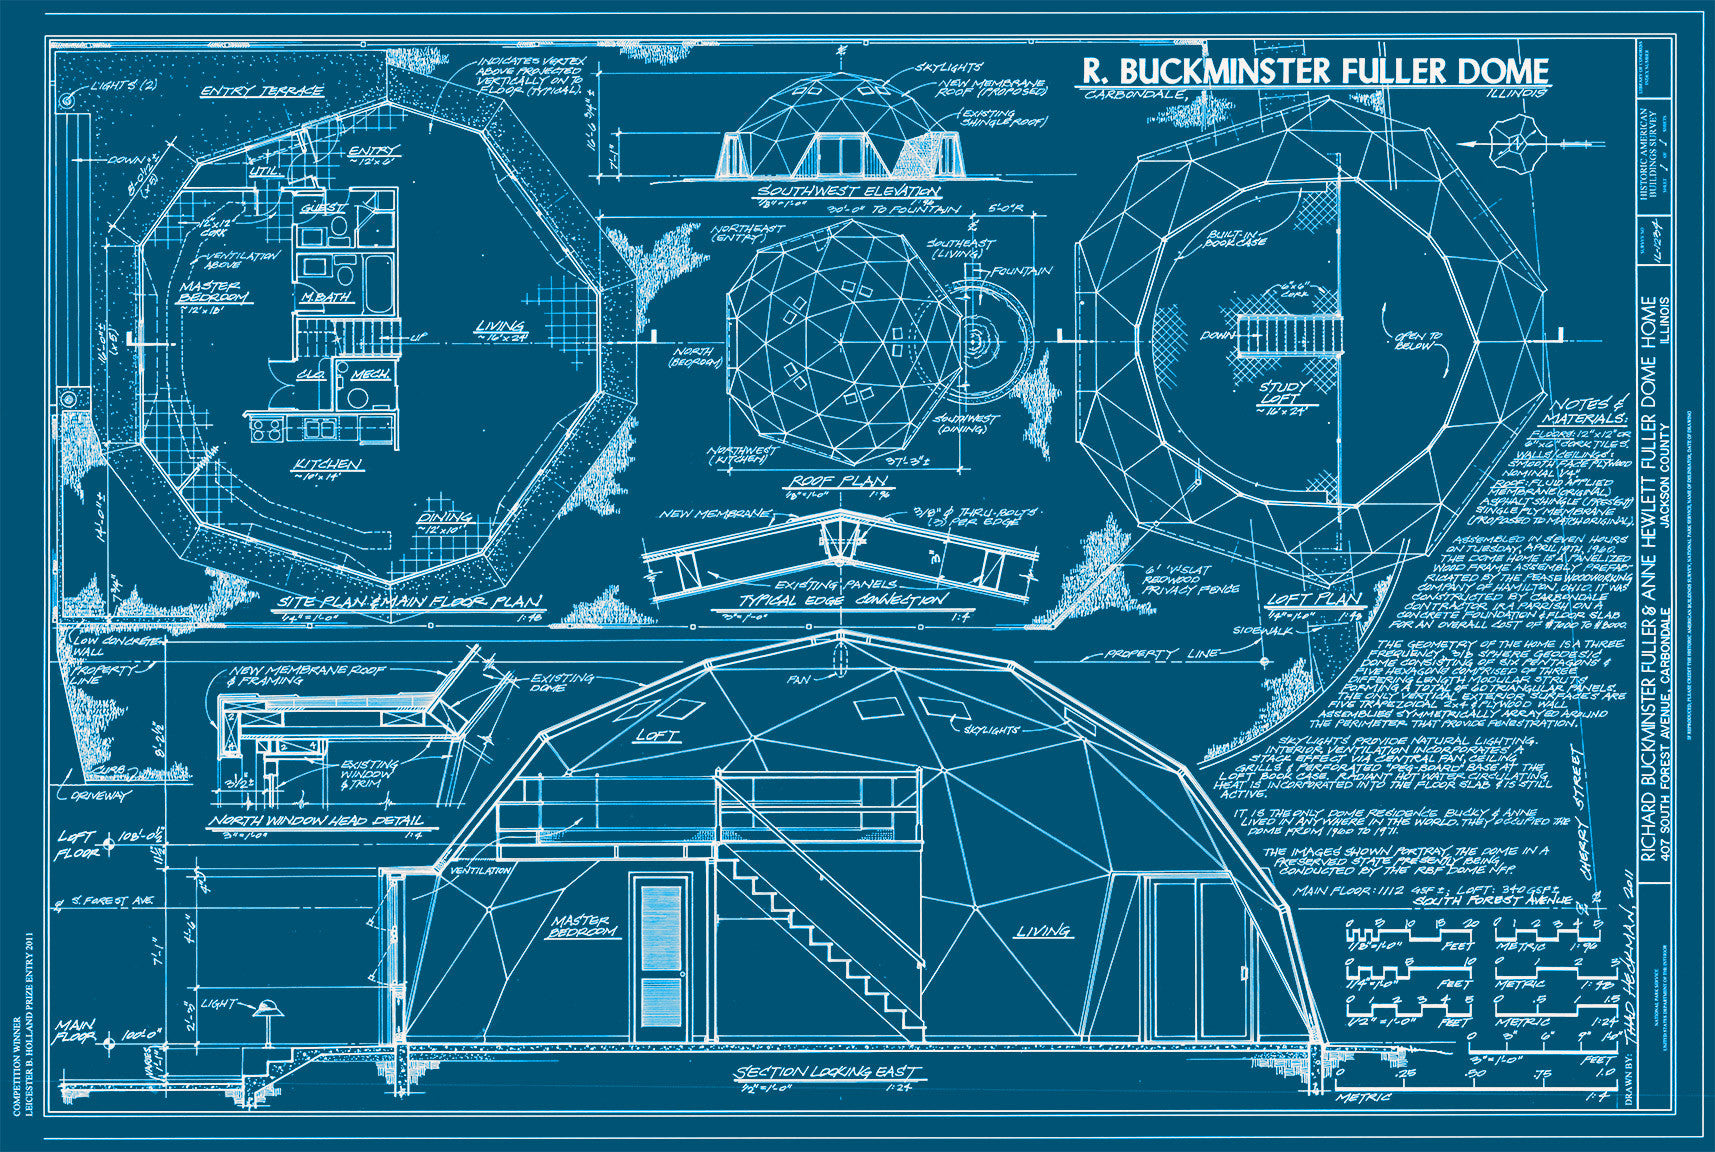 Print Collection - Buckminster Fuller Dome Drawings